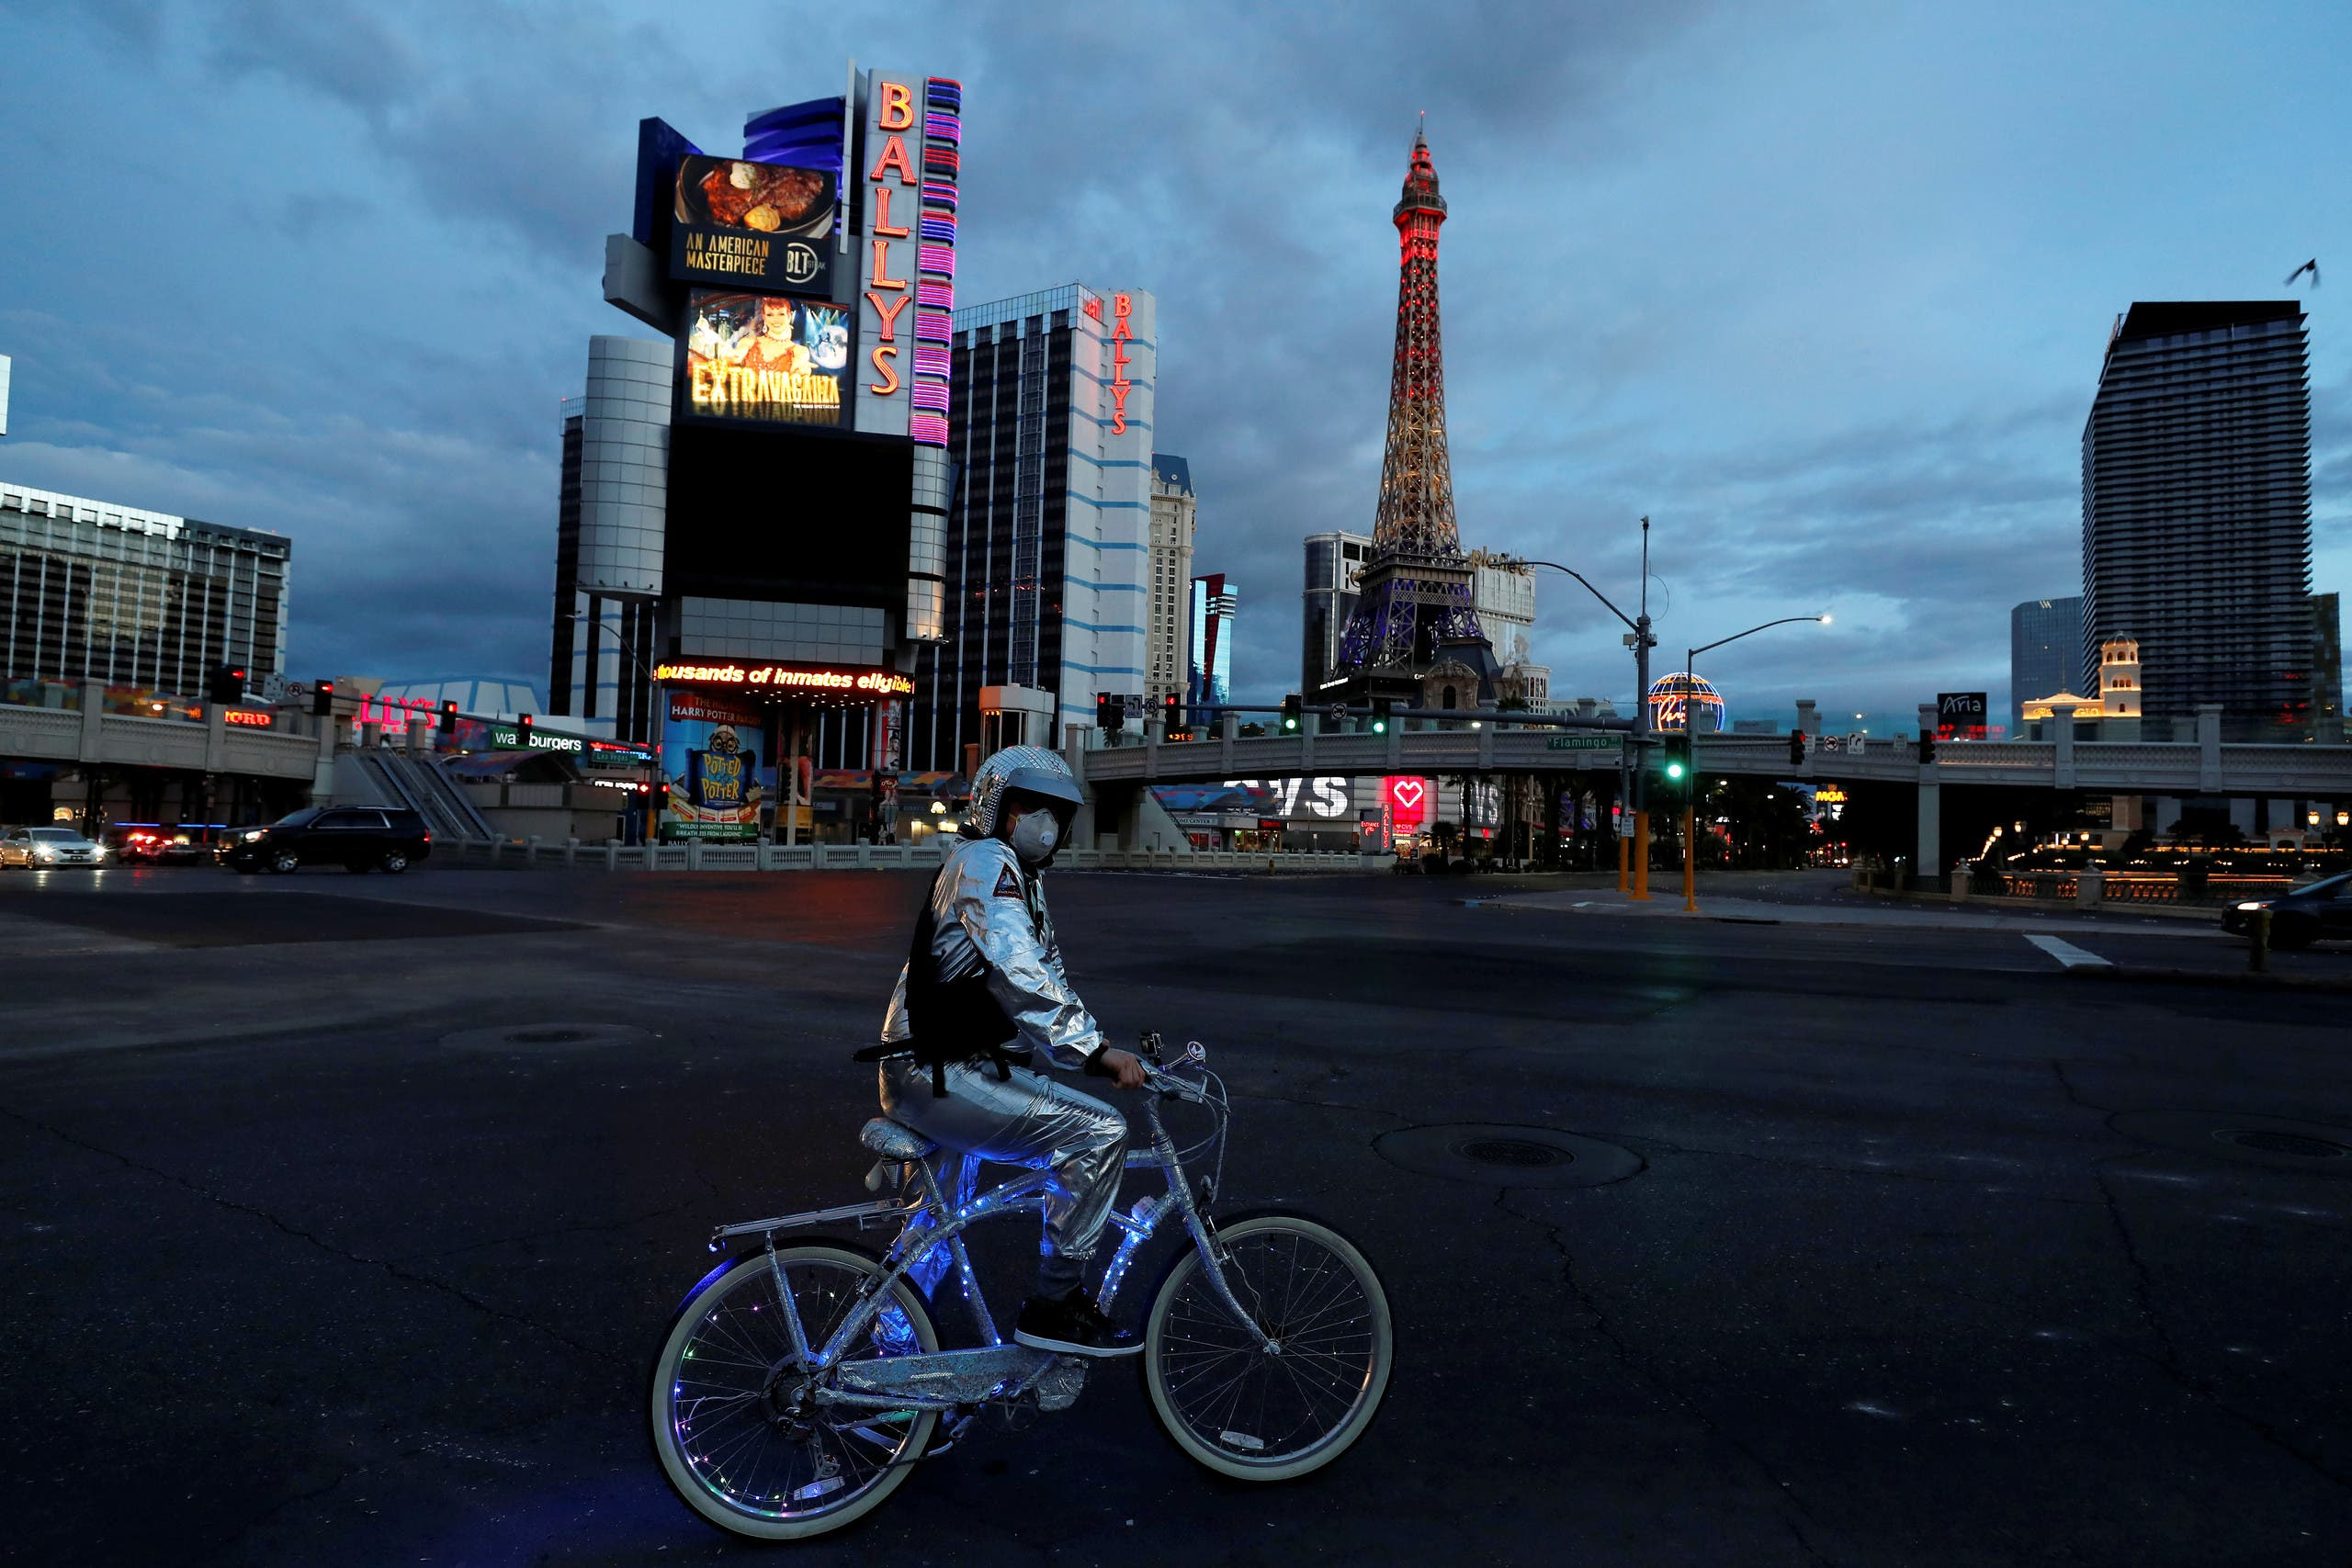 A man stands on his bicycle on the Las Vegas strip as the spread of COVID-19 continues, in Las Vegas, Nevada on April 10, 2020. (Reuters)